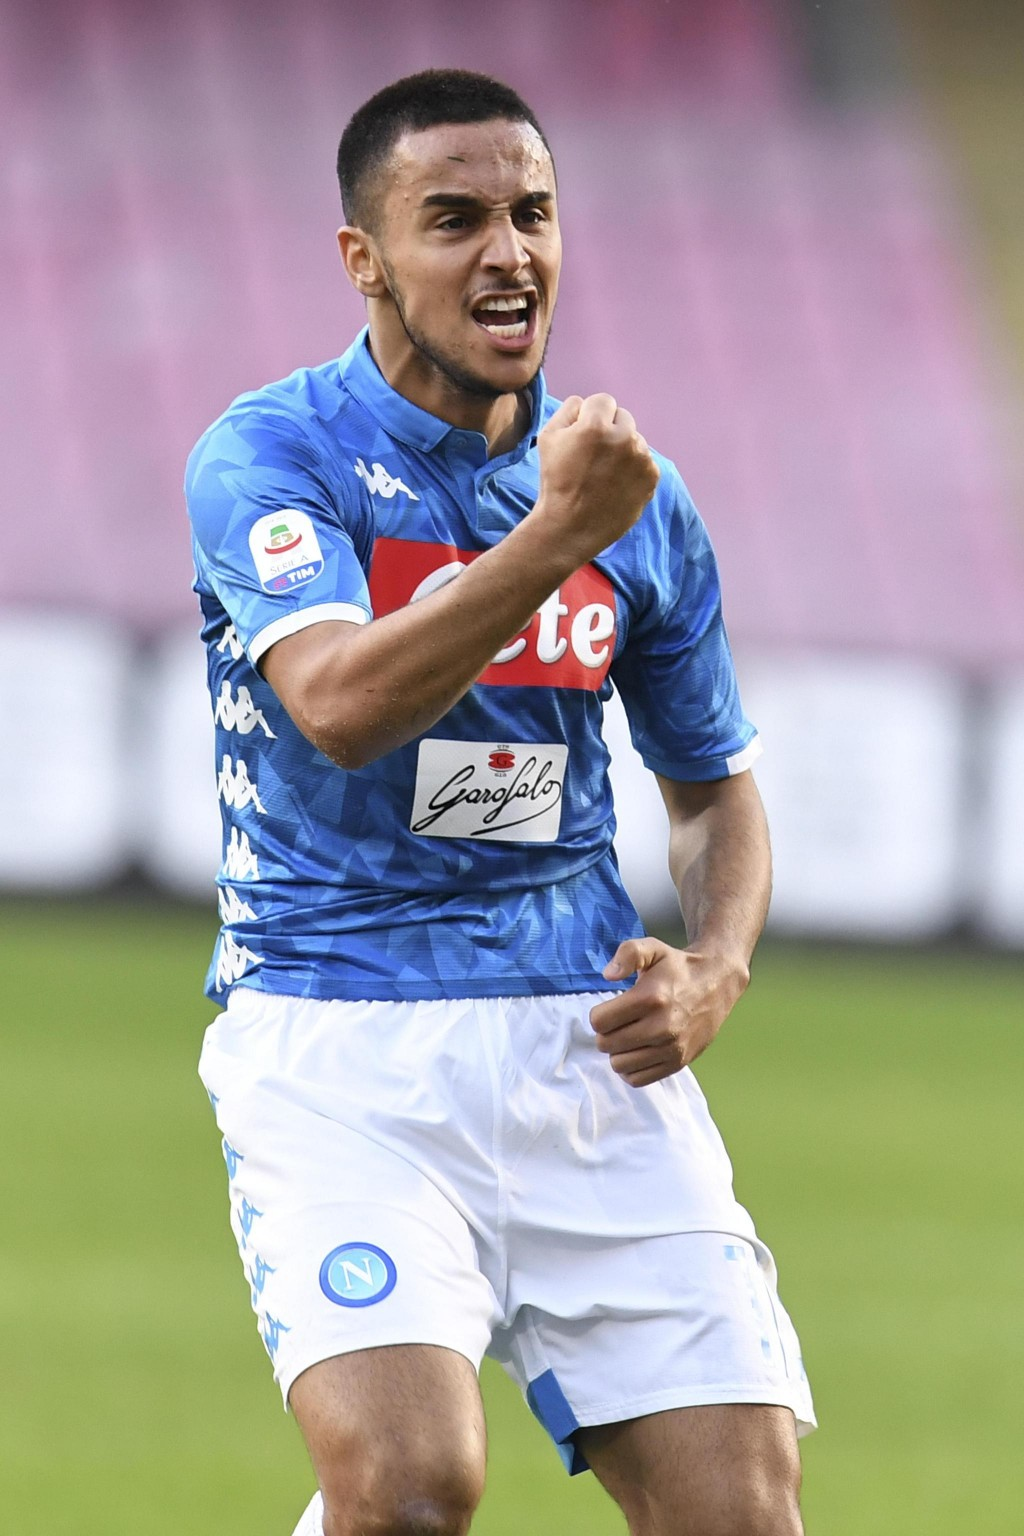 Napoli's Adam Ounas celebrates after scoring his side's second goal during the Serie A soccer match between Napoli and Frosinone, at the San Paolo sta...